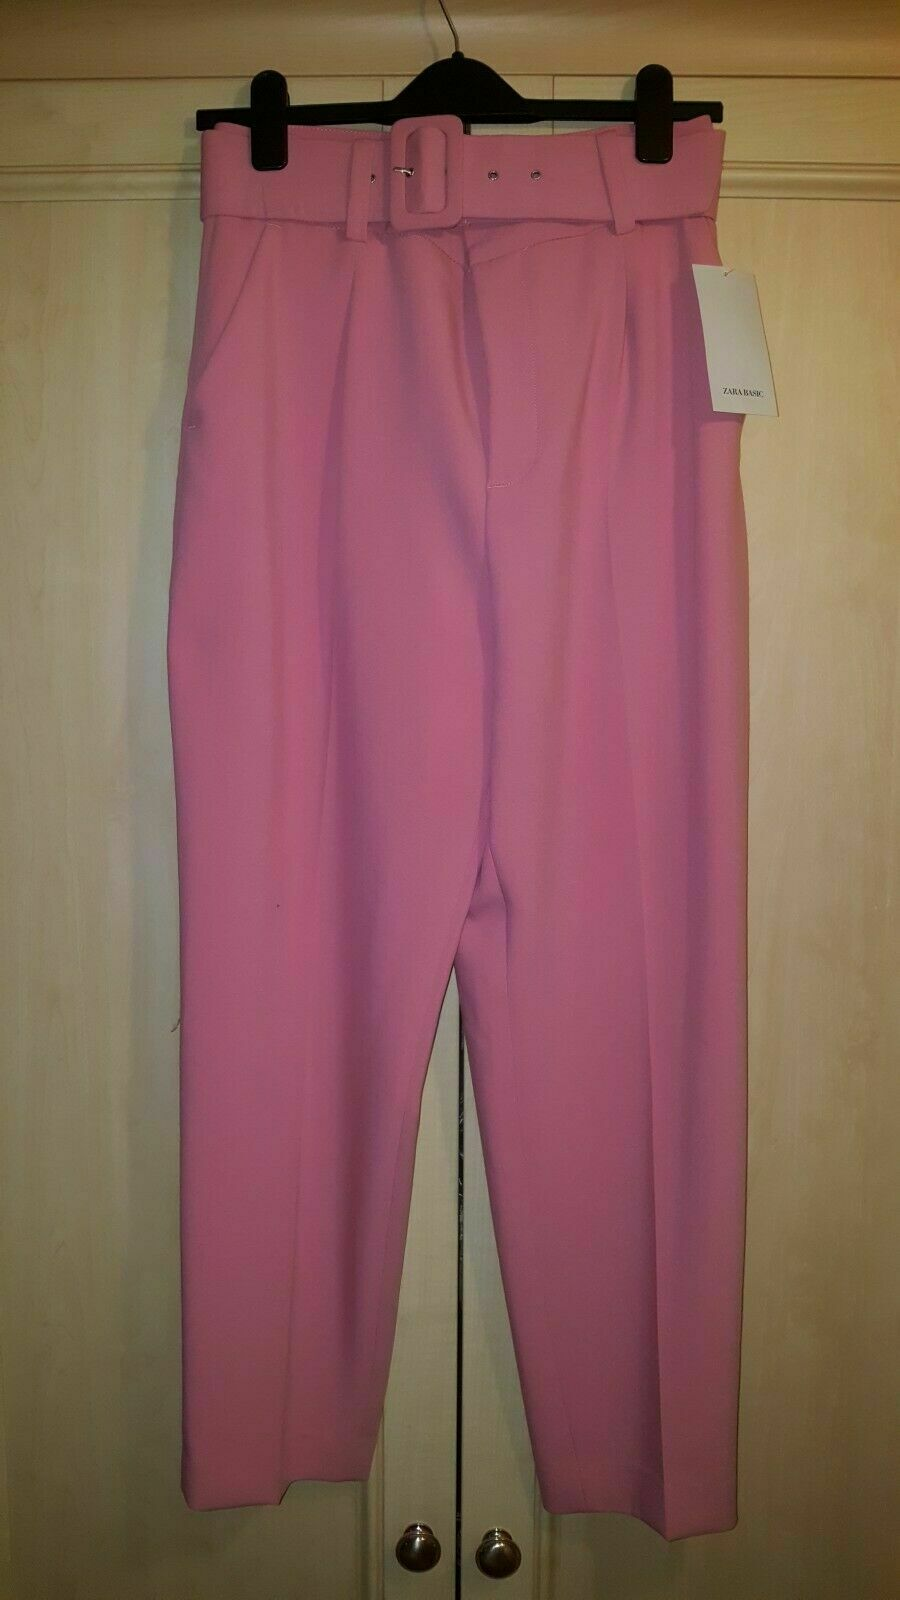 BNWT ZARA Rosa BELTED TROUSERS Größe EXTRA SMALL